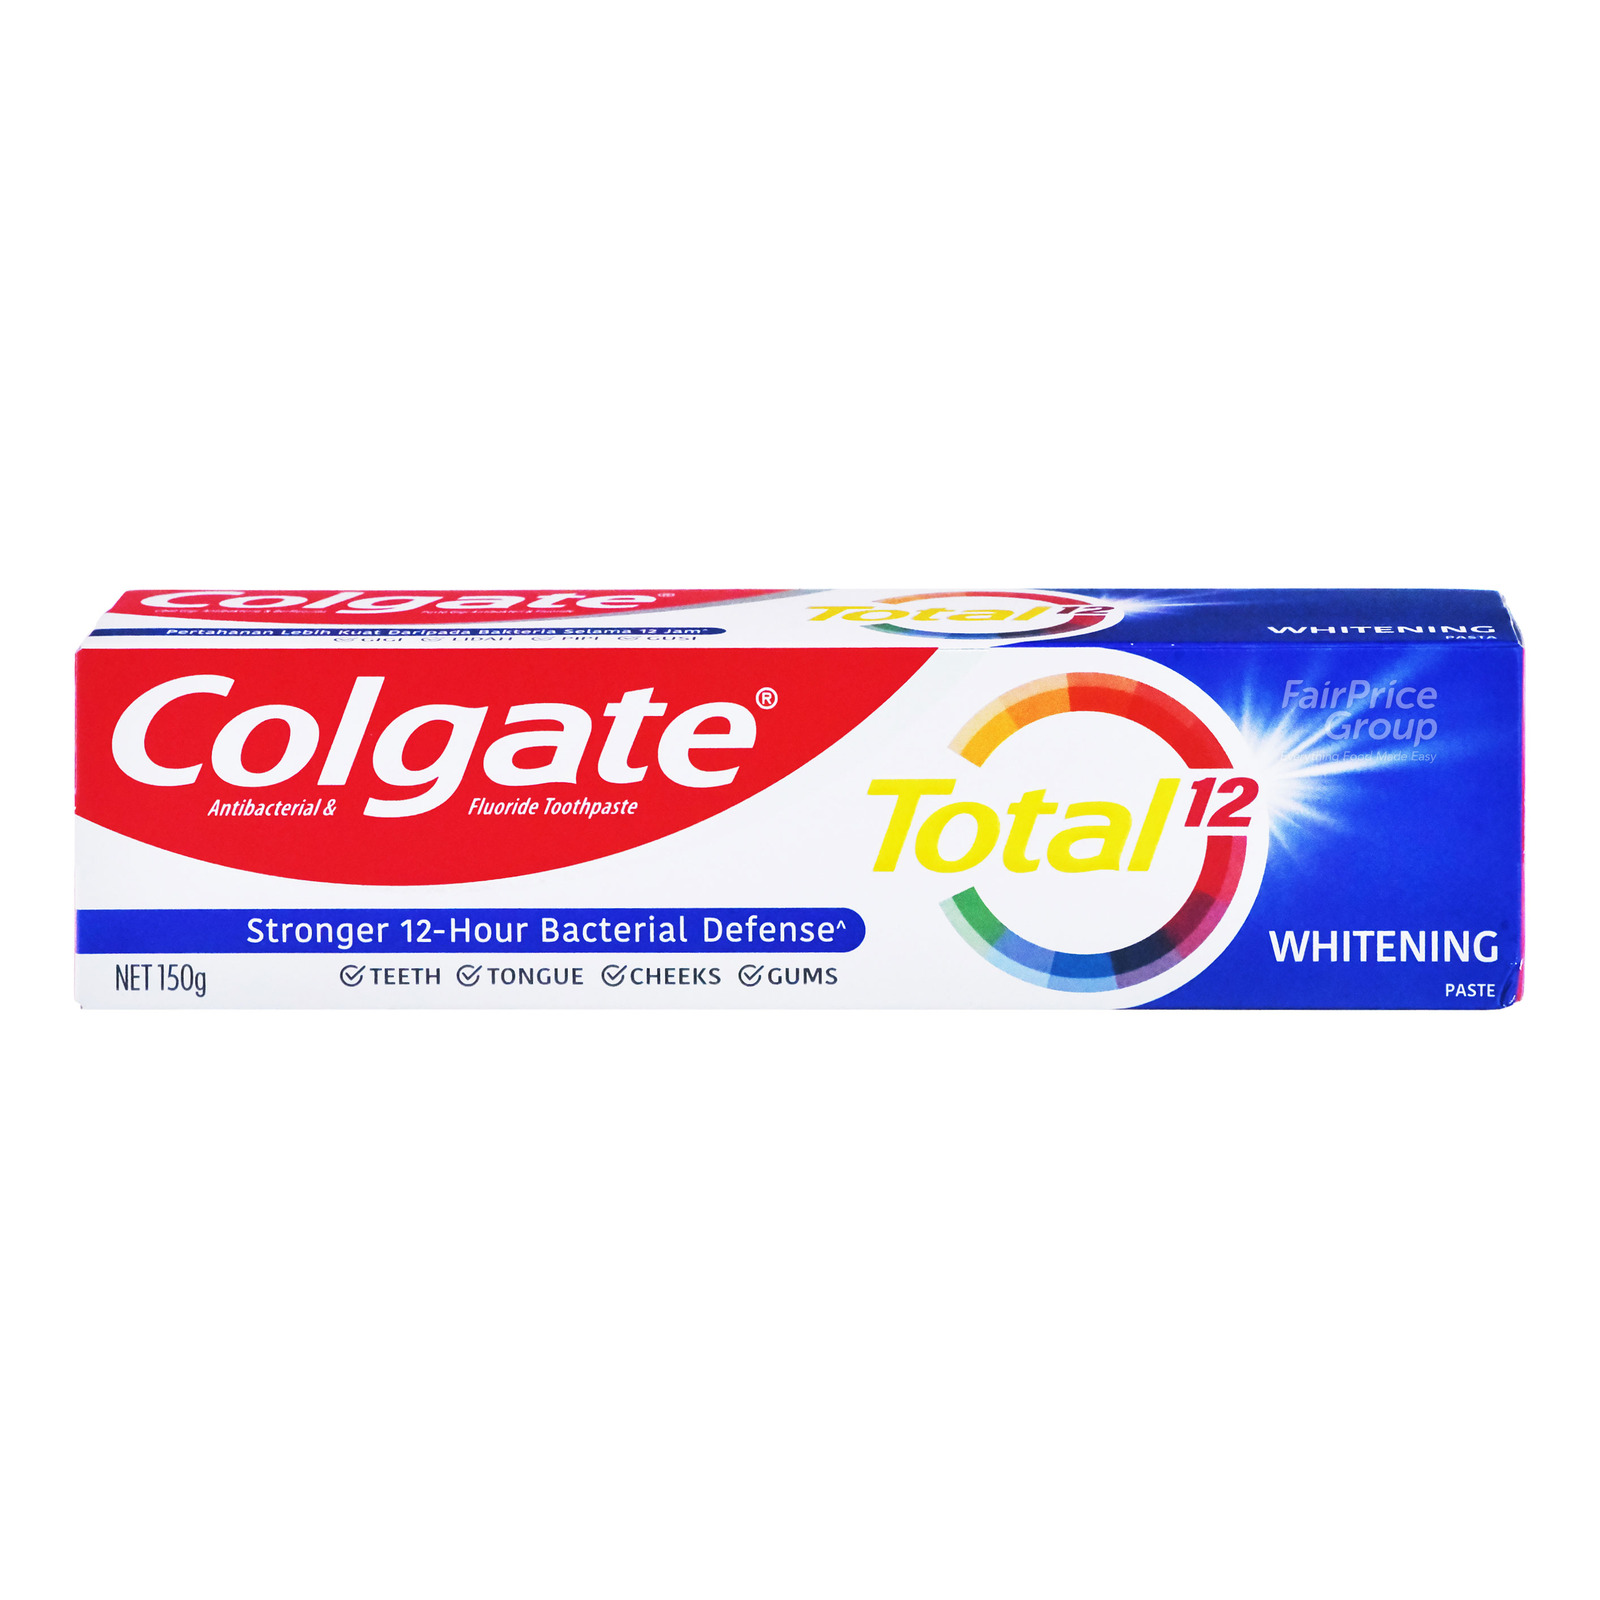 Colgate Total Toothgel - Professional Whitening